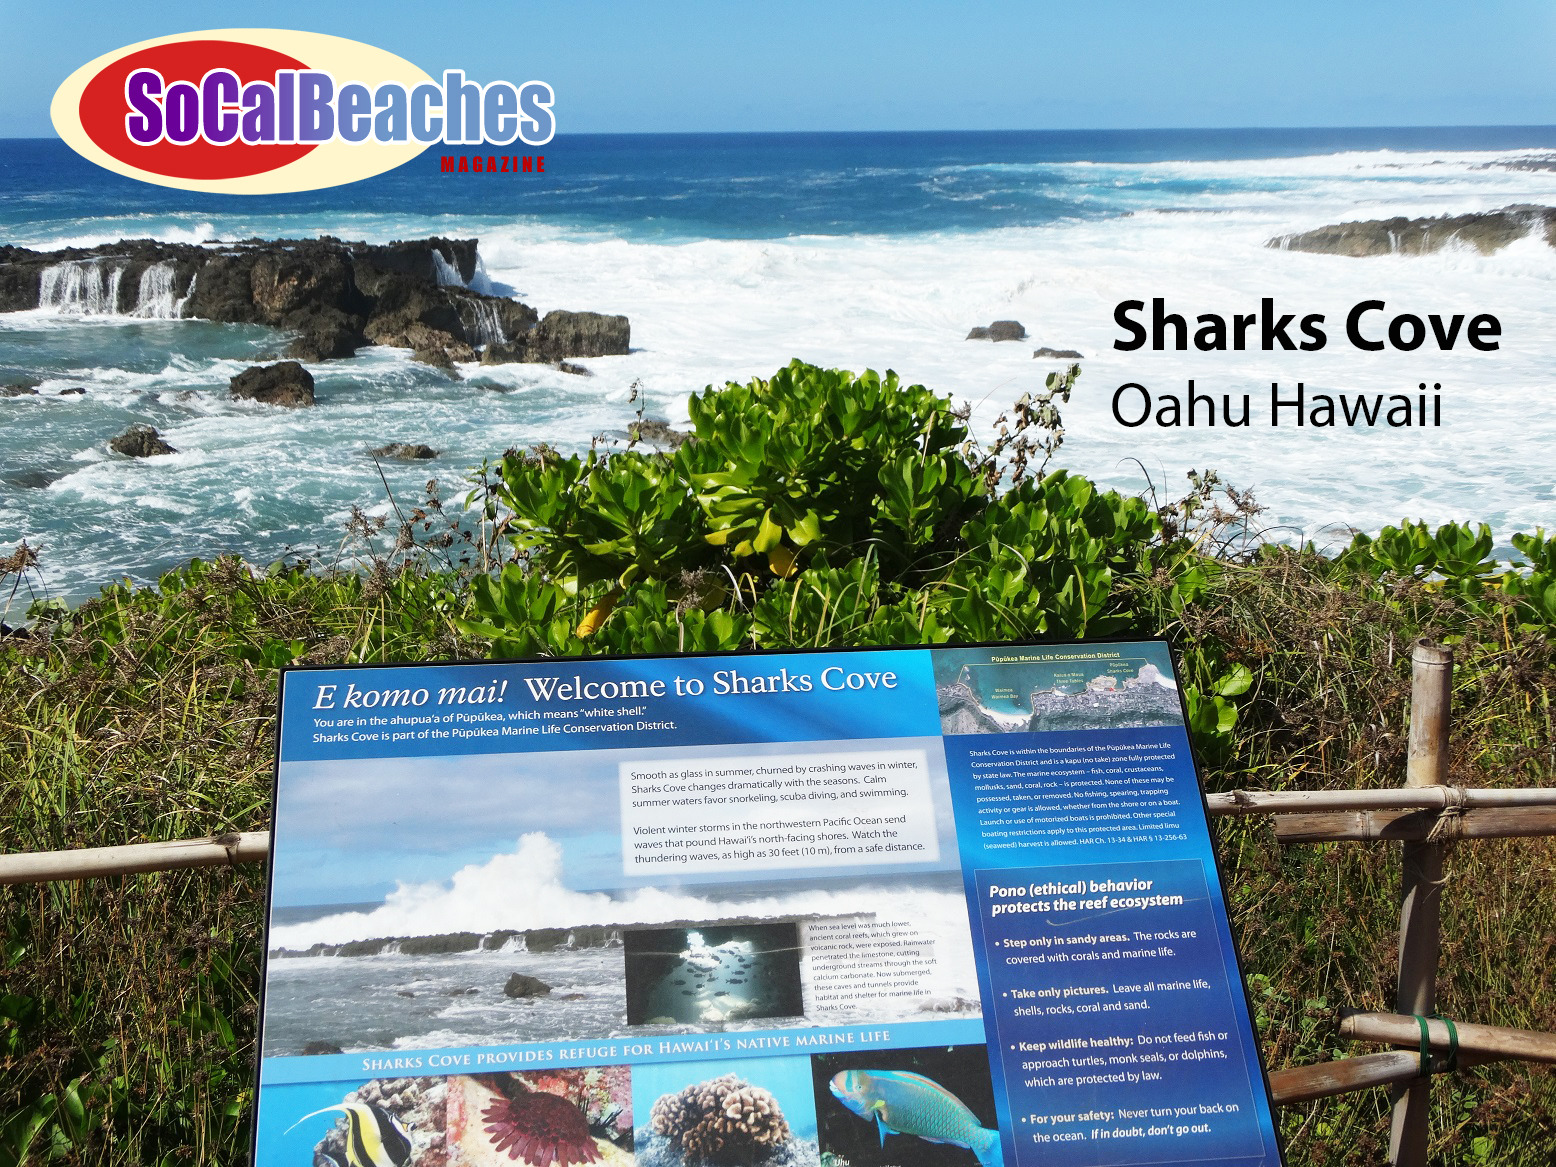 Sharks Cove, North Shore Oahu Hawaii